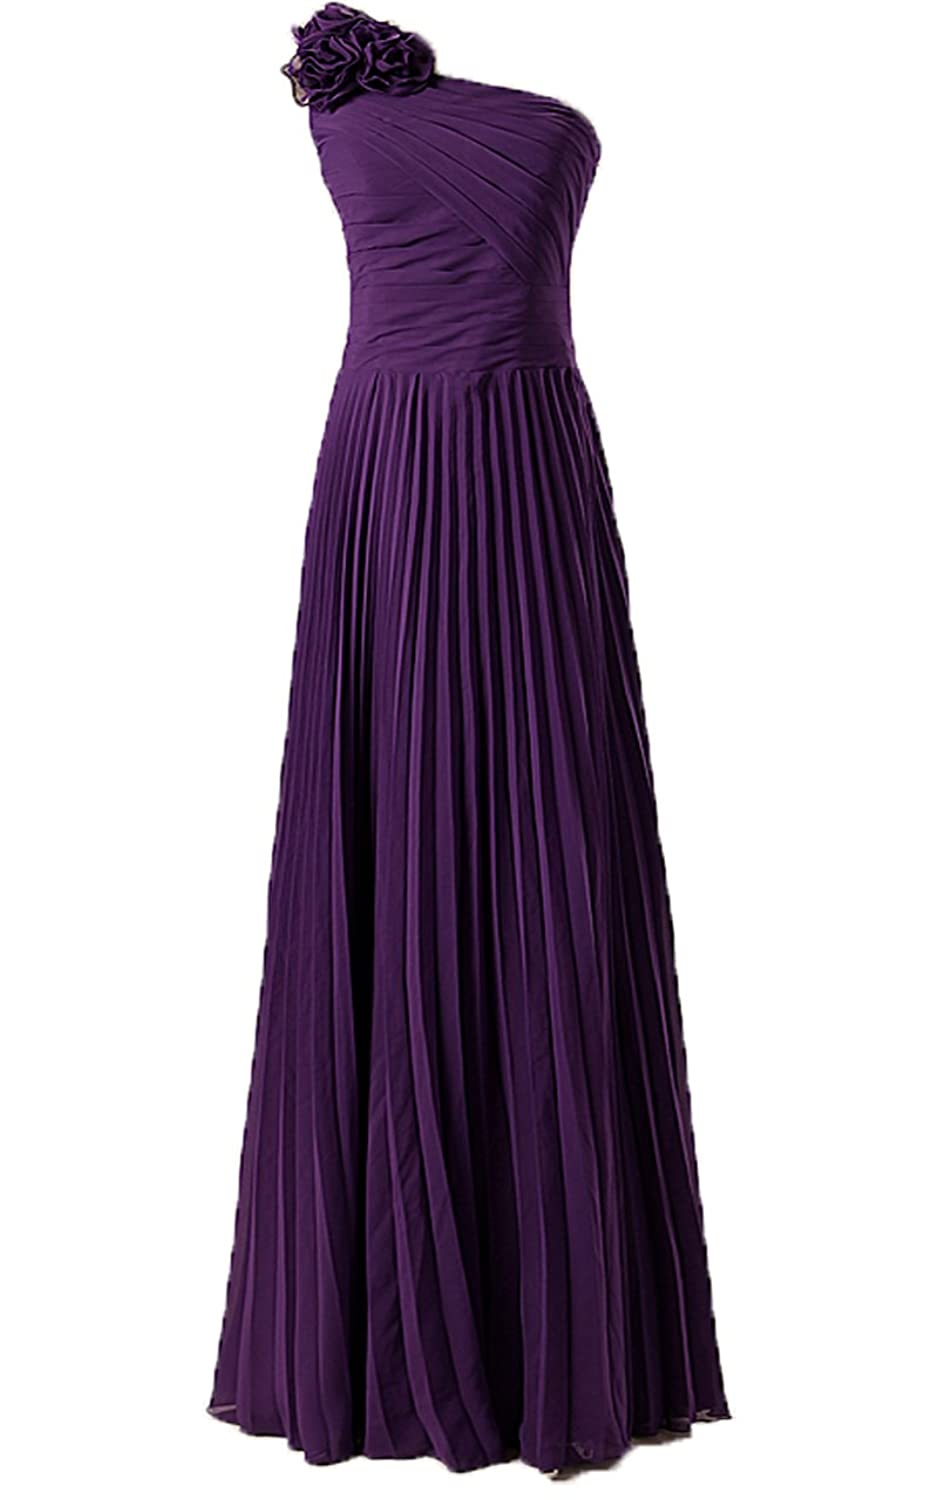 Anna's Bridal Women's Flowers One Shoulder Bridesmaid Dresses Long Prom Gowns